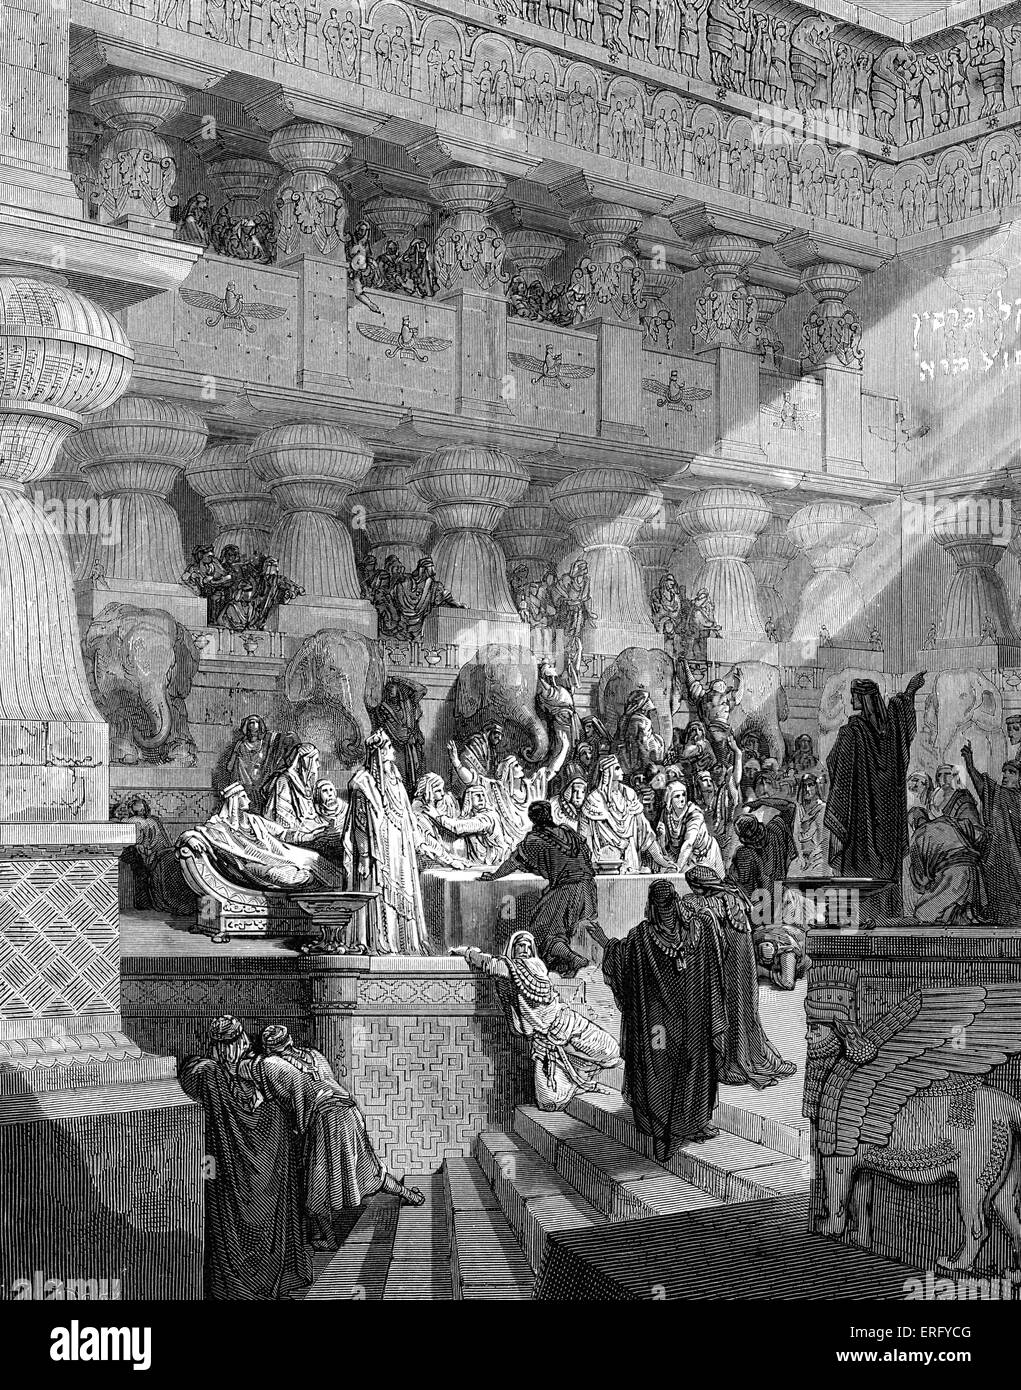 Daniel interprets the writing on the wall in the court of Babylon.  Engraving by Gustave Doré (1832 - 1883). - Stock Image